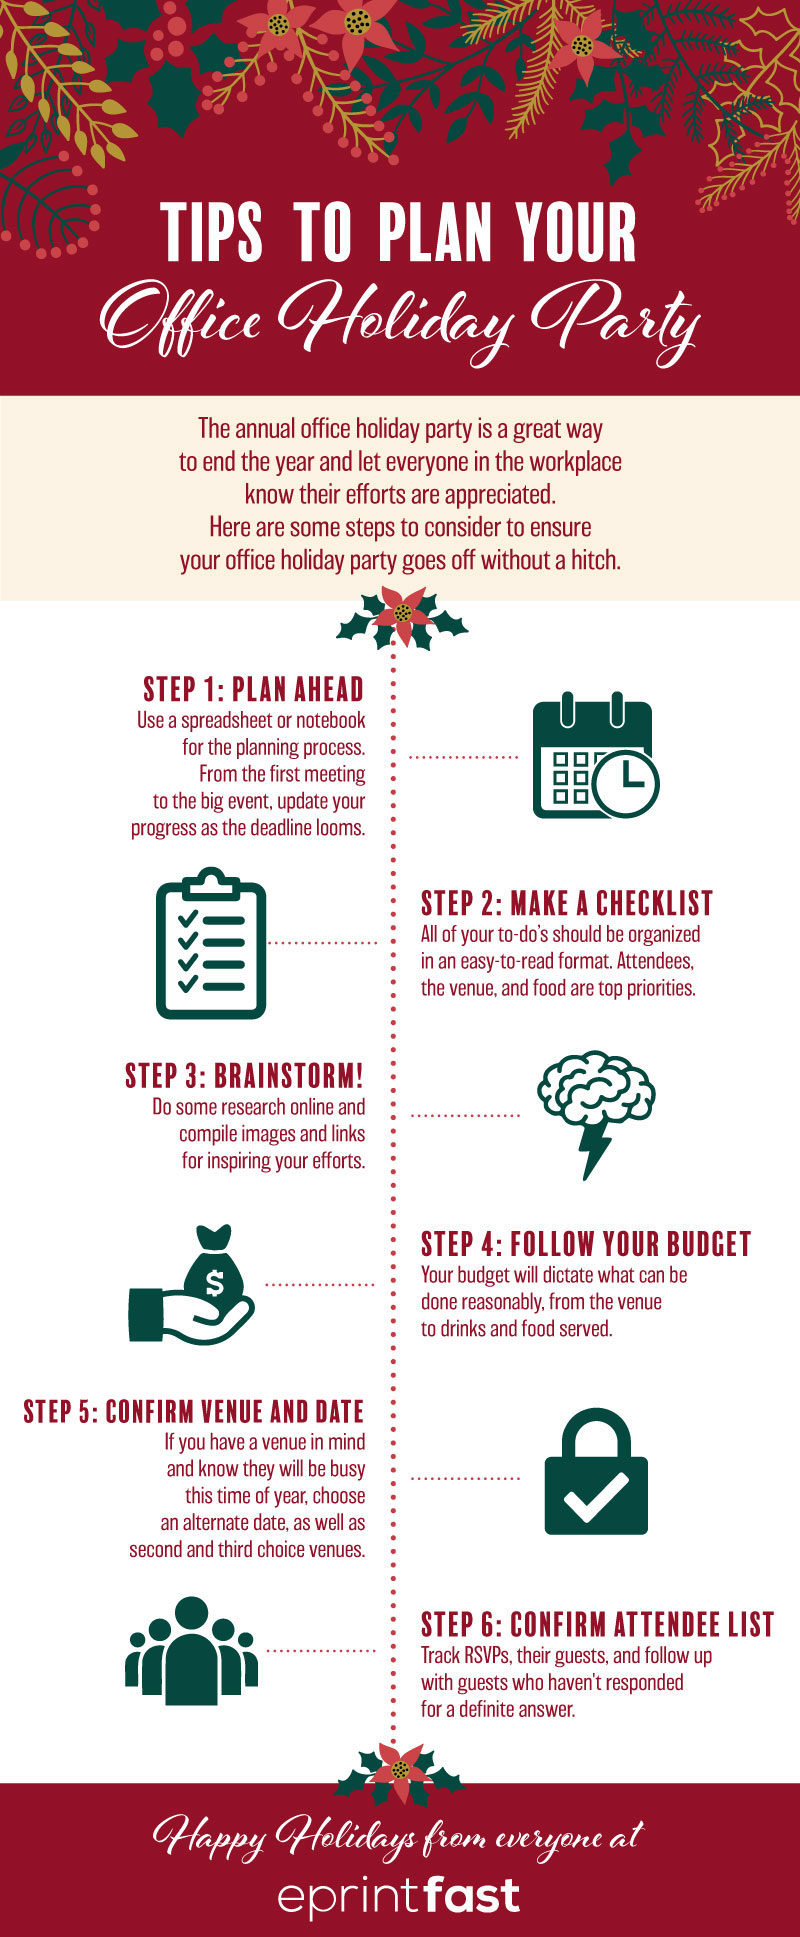 Tips to Plan Your Office Holiday Party